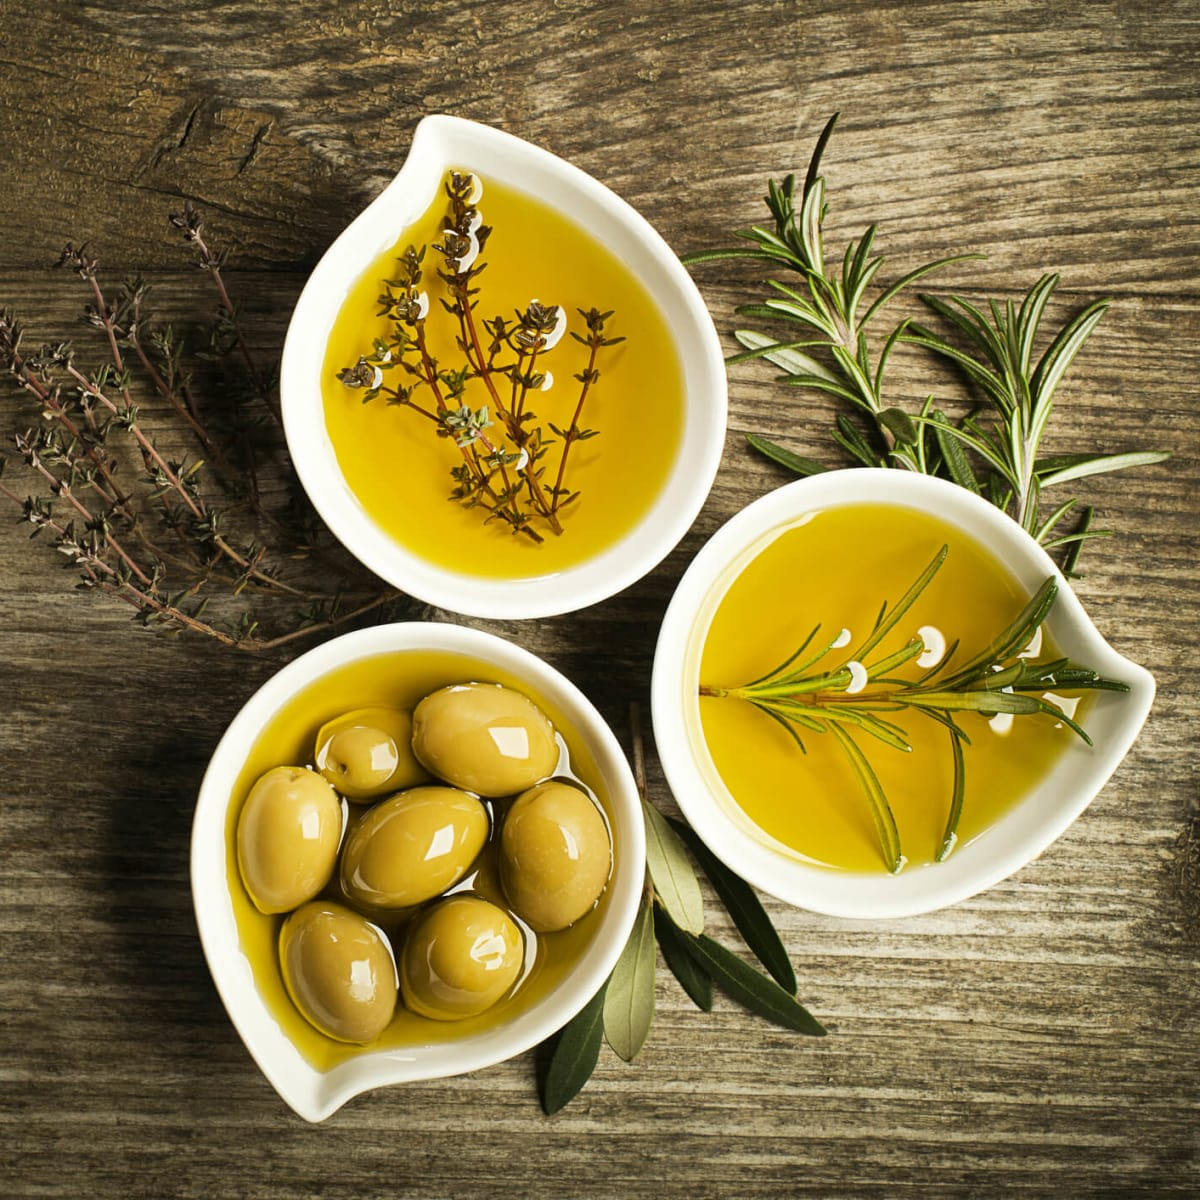 Bowls of olives, olive oil, and herbs